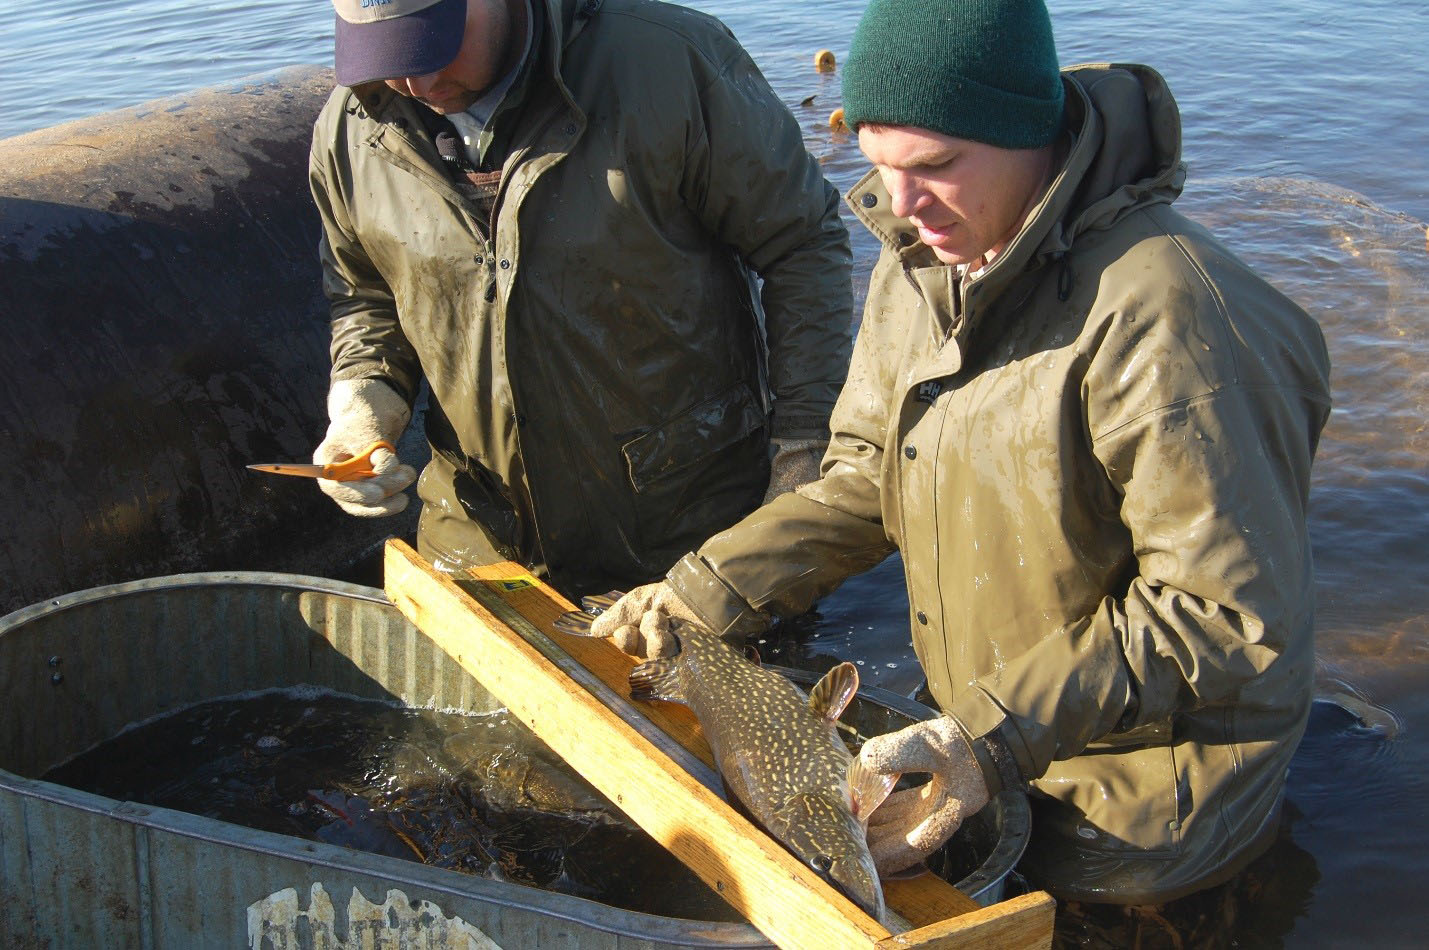 Brainerd area fisheries staff sampling northern pike in Gull Lake at ice-out.